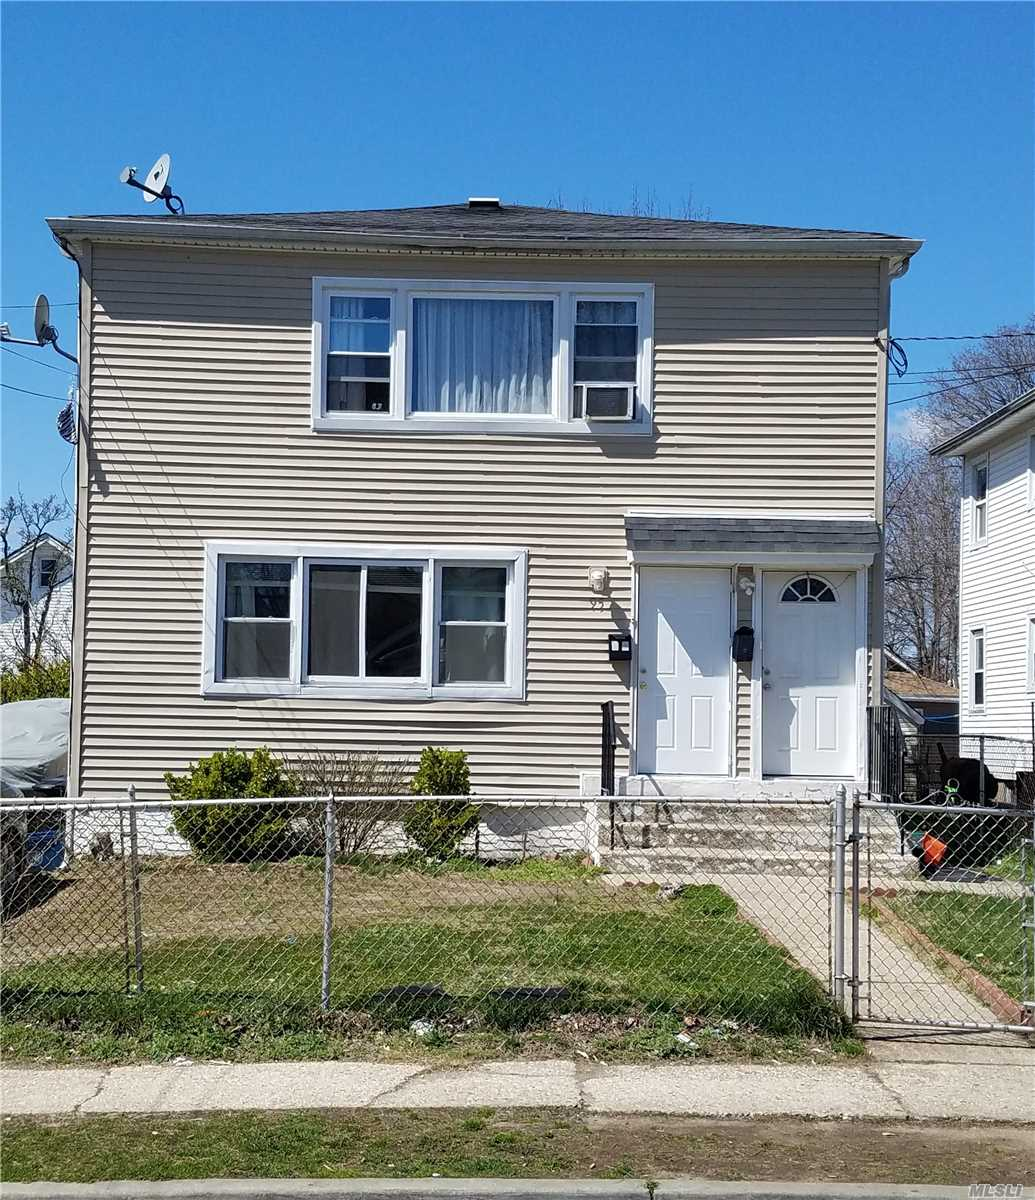 Gorgeous Legal 2-Family Newly Renovated Duplex - $56K Rent Roll. Investor House Only. Tenants Lease Intact. Comes Tenant Occupied.